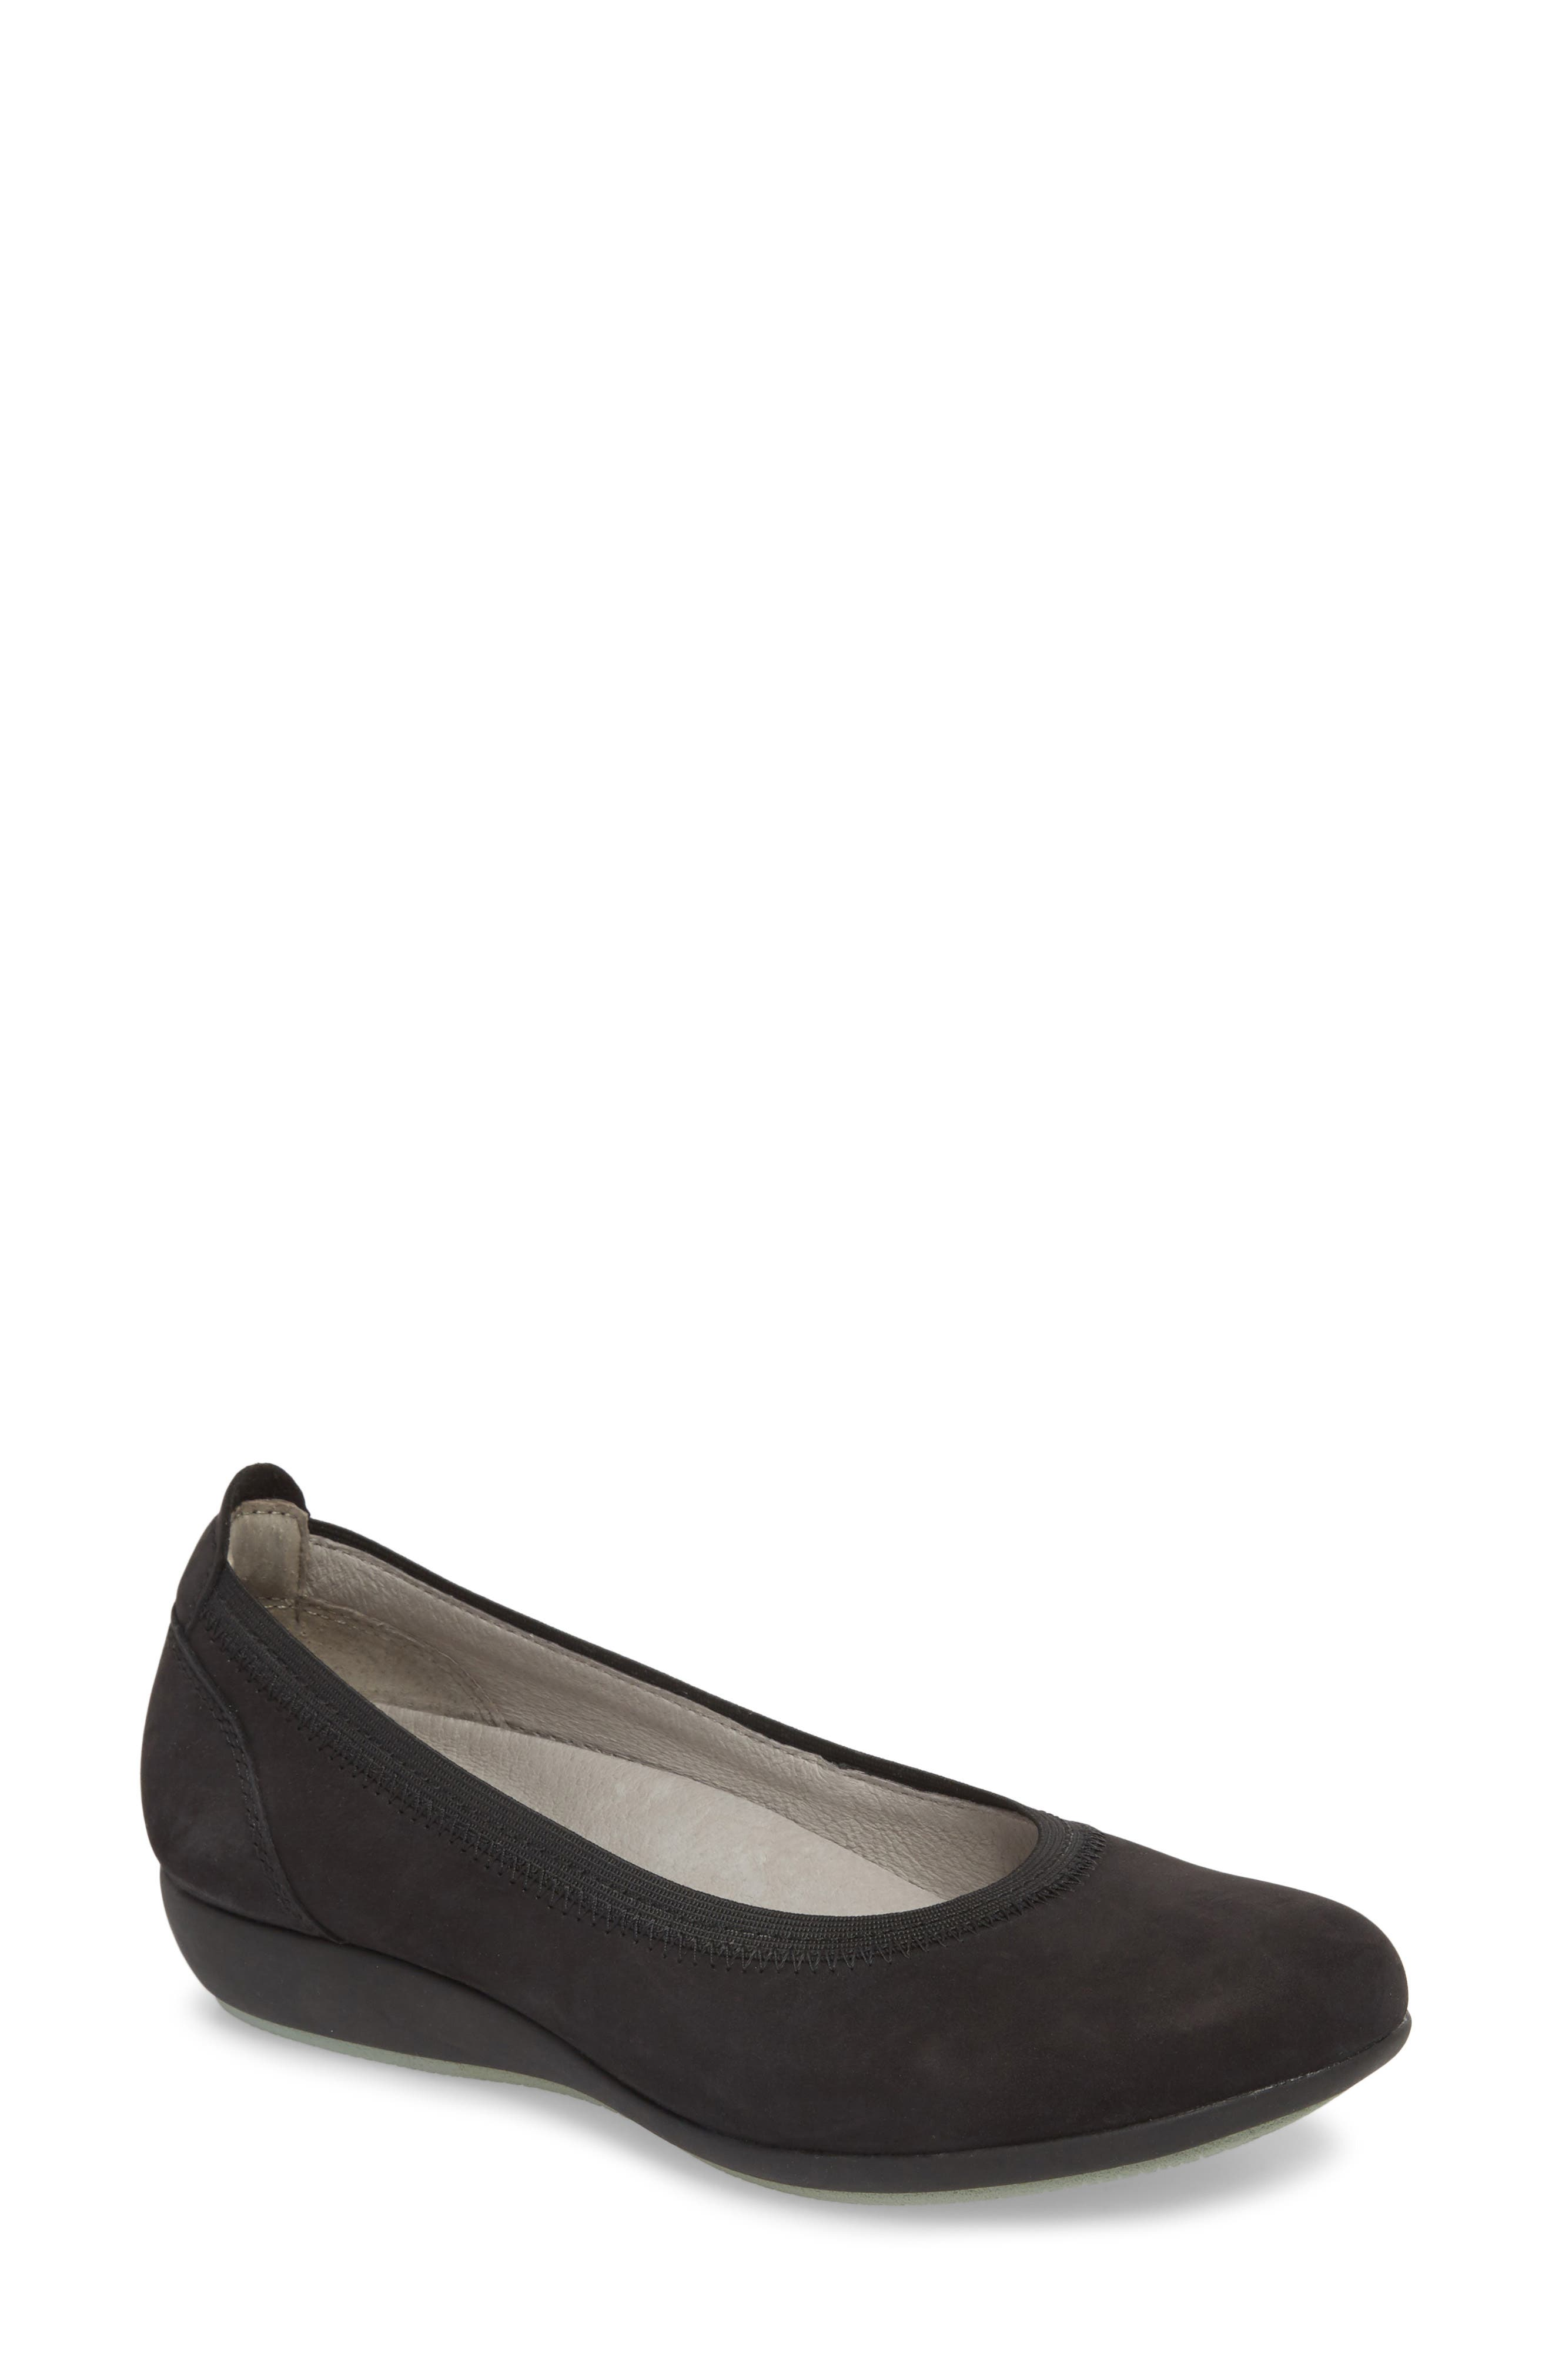 DANSKO, Kristen Ballet Flat, Main thumbnail 1, color, BLACK MILLED NUBUCK